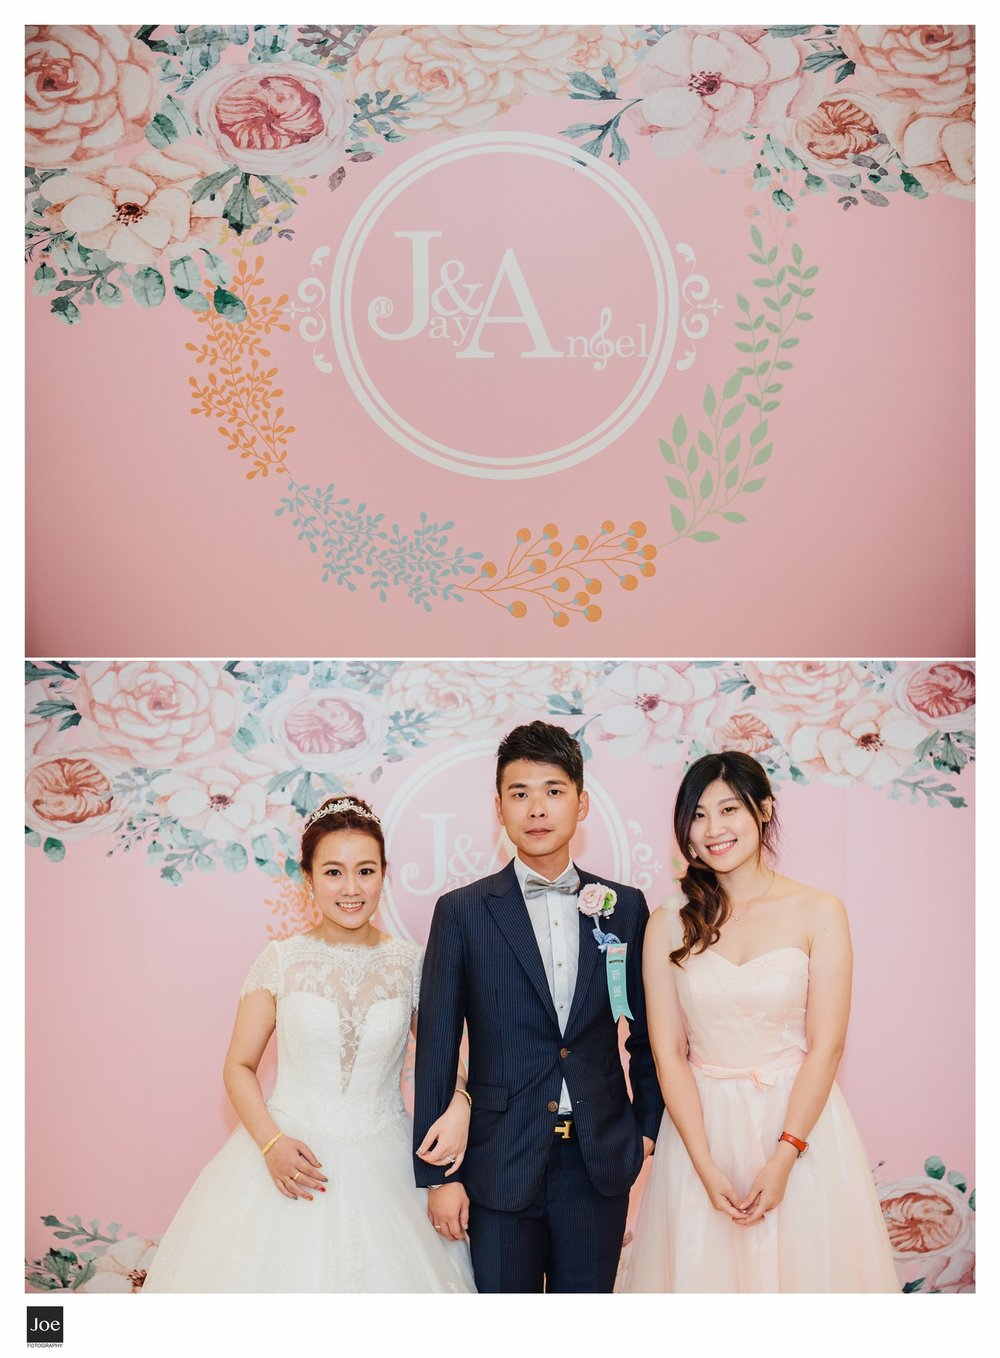 sunworld-dynasty-hotel-taipei-wedding-photo-joe-fotography-angel-jay-093.jpg